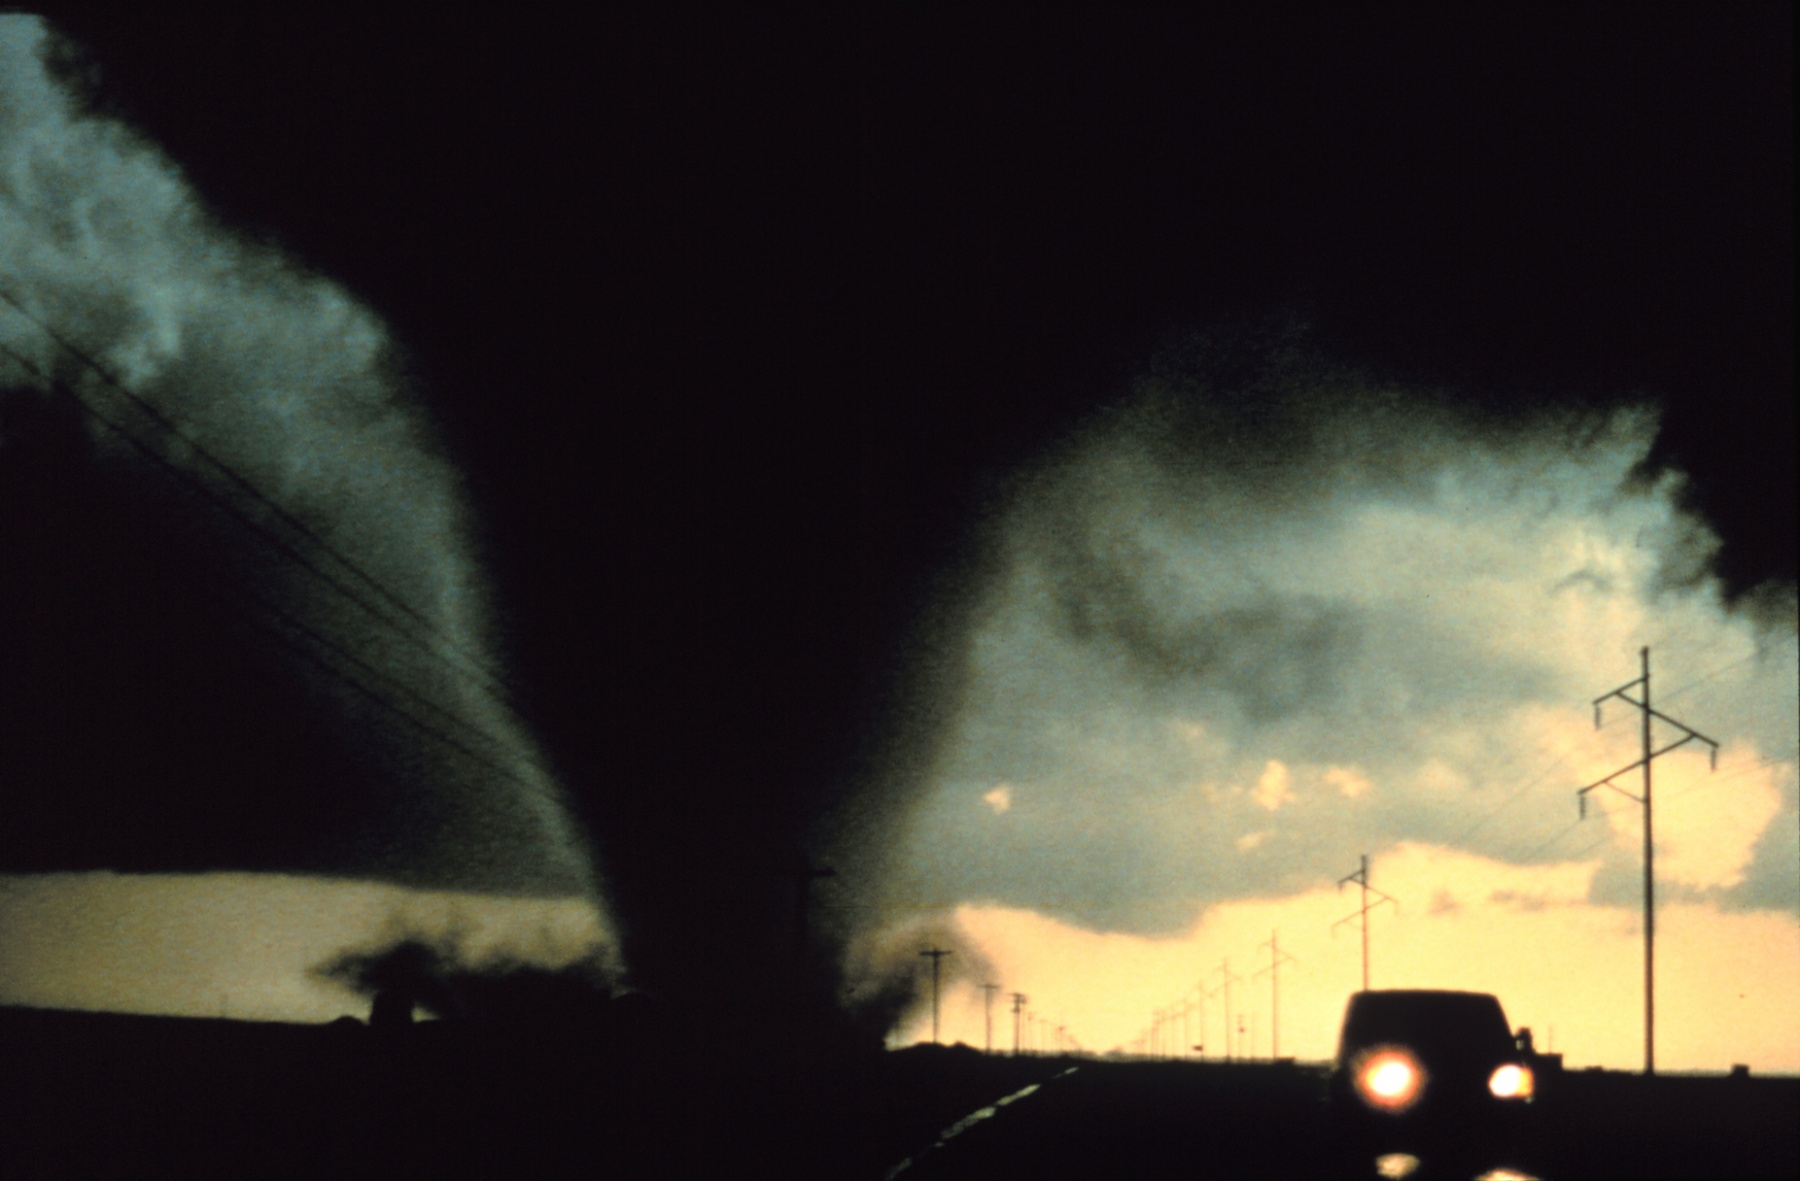 Фото. Техас, 2 июля 1995г. Harald Richter, NOAA Photo Library, NOAA Central Library; OAR/ERL/National Severe Storms Laboratory (NSSL)